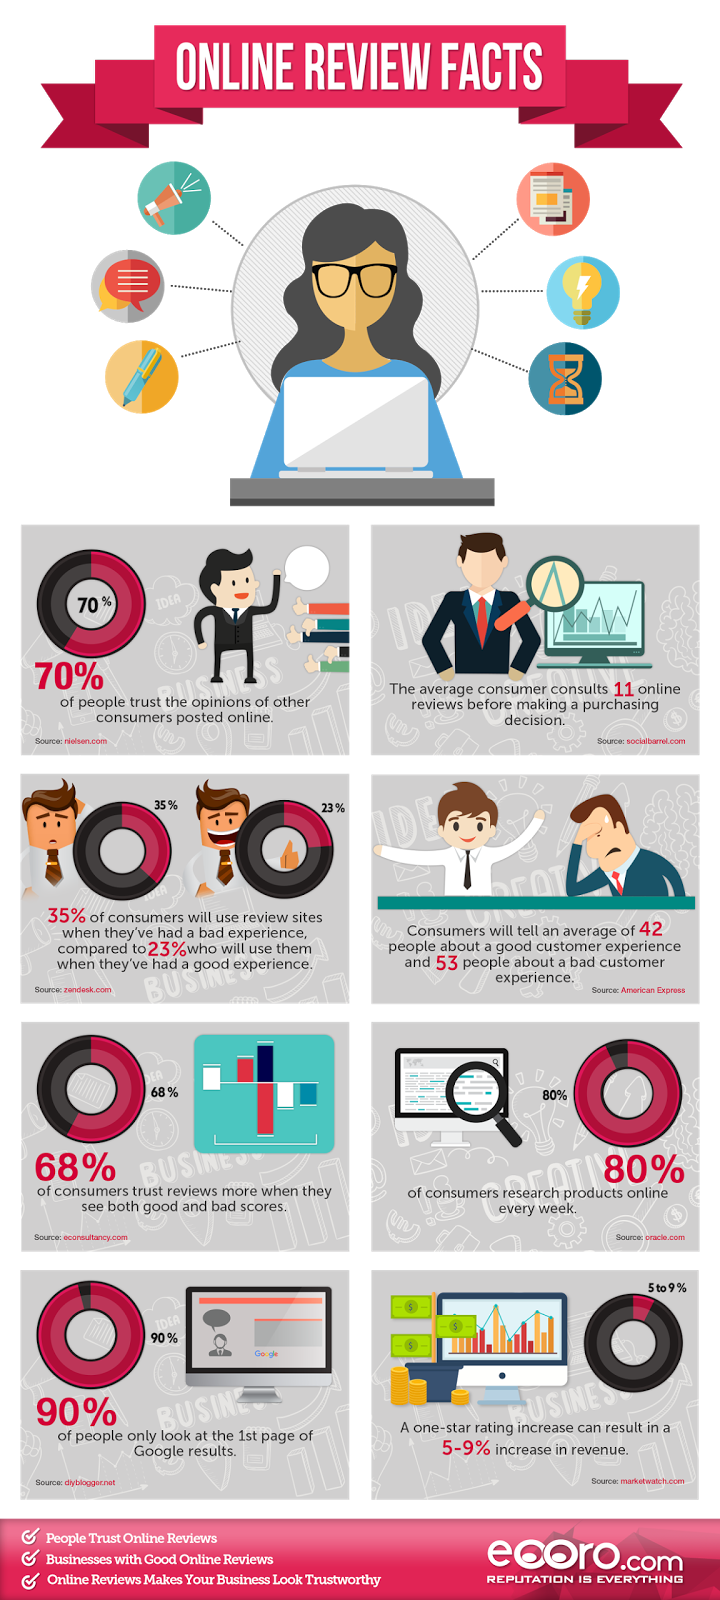 Infographic About Online Review Facts & Stats for Business Owners